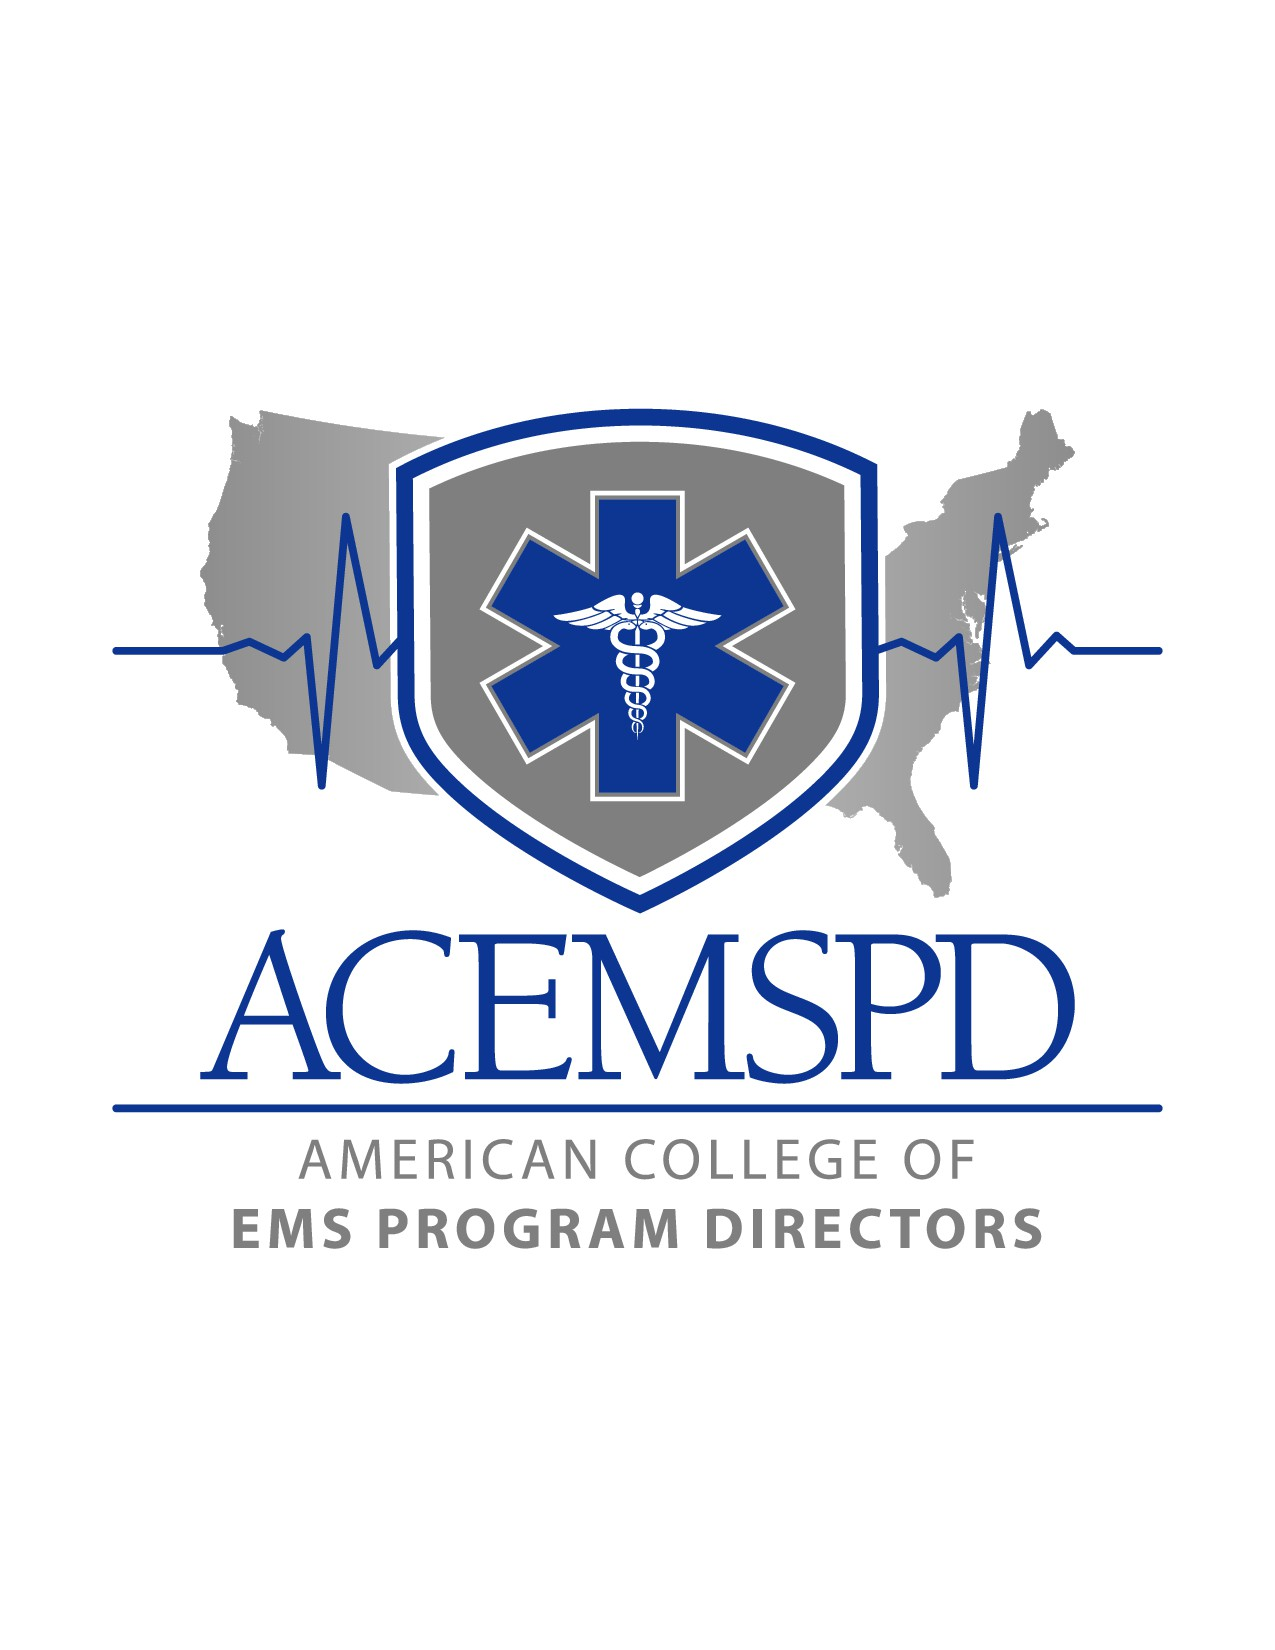 ACEMSPD -American College of EMS Program Directors needs a UNIQUE logo!!